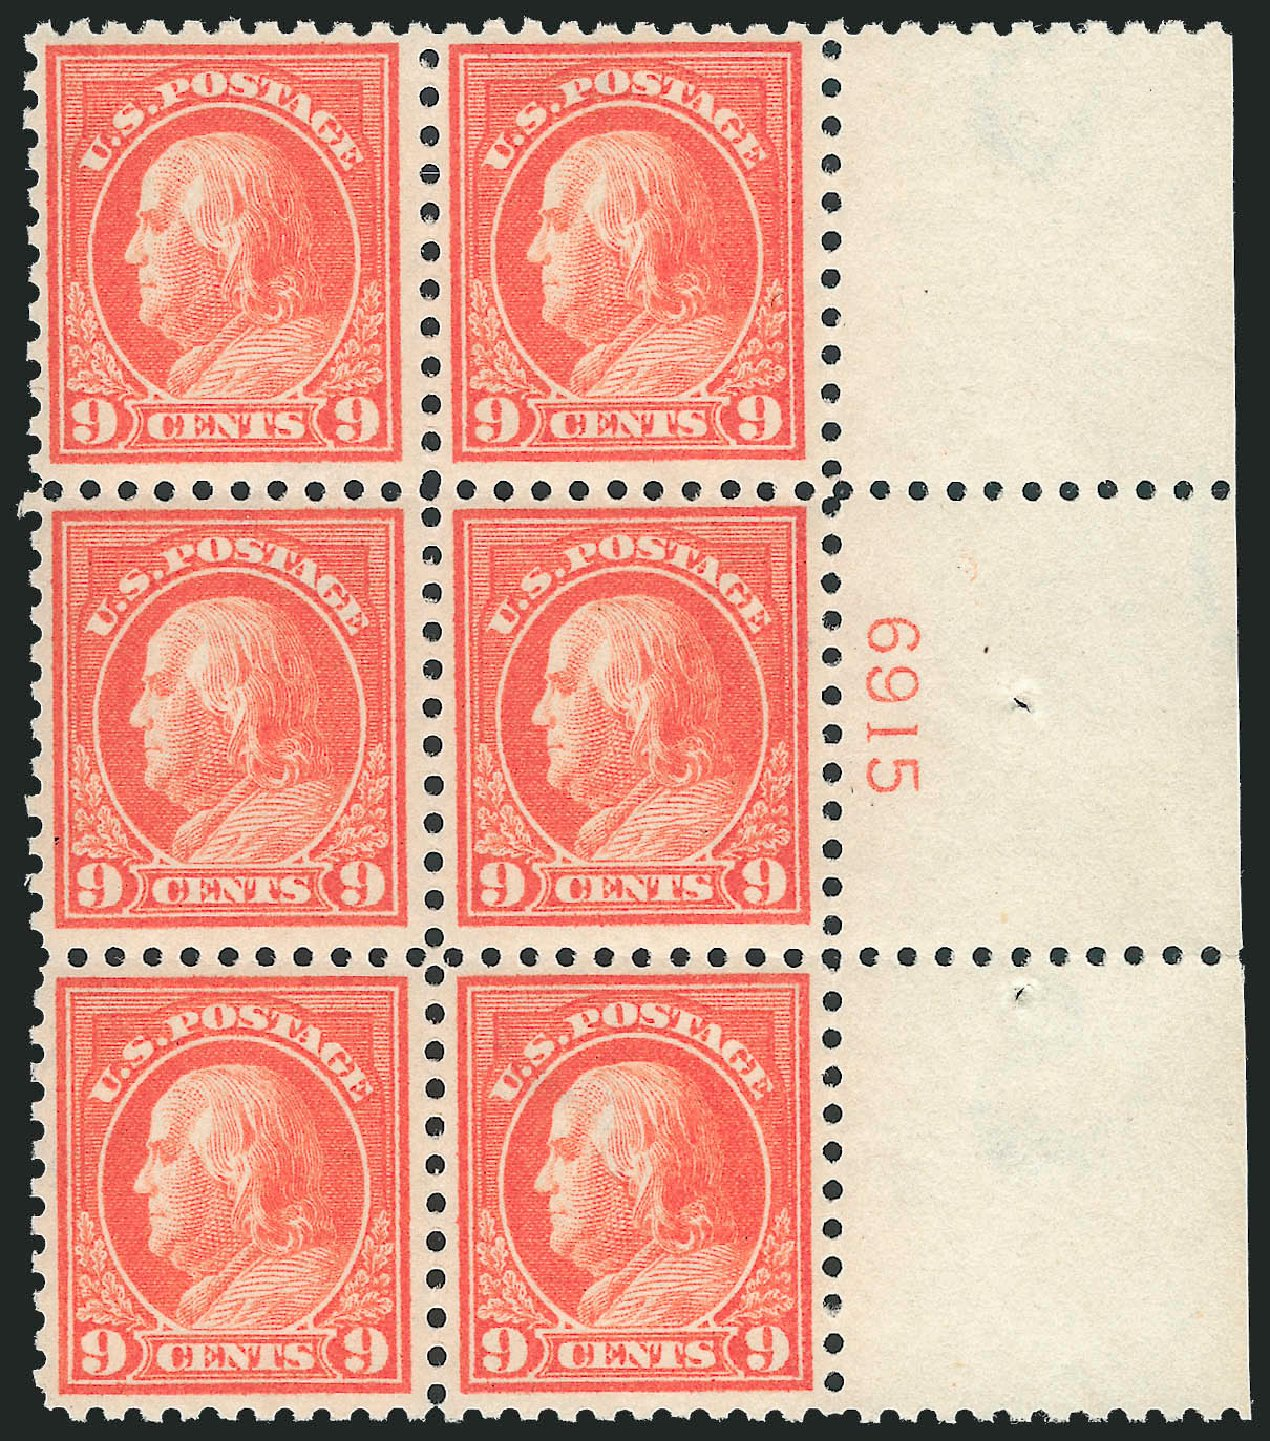 US Stamp Prices Scott Cat. # 432 - 9c 1914 Franklin Perf 10. Robert Siegel Auction Galleries, Mar 2014, Sale 1067, Lot 1522